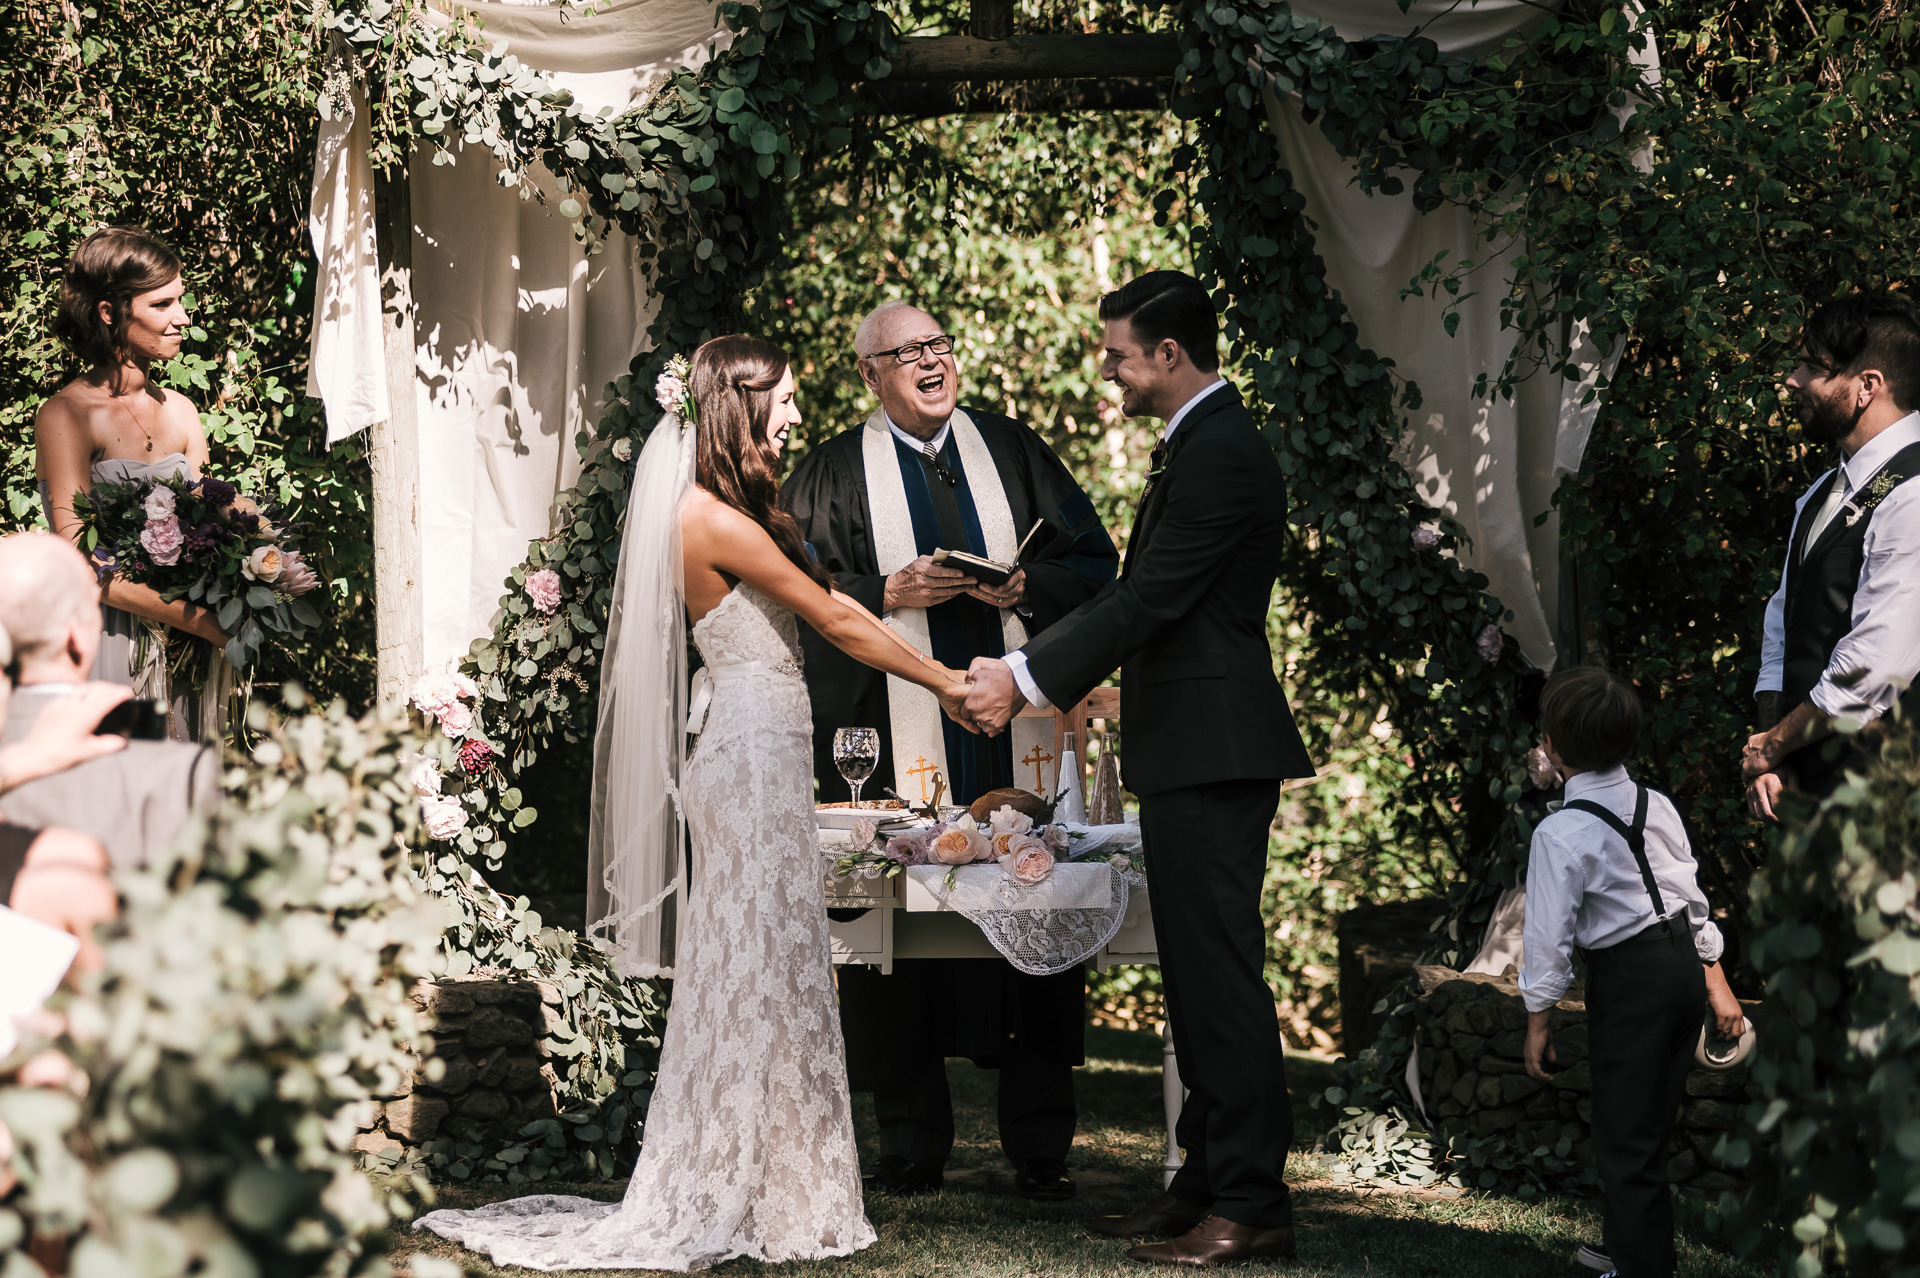 Beautiful marriage ceremony at the Quail Haven Farm in Vista, California.